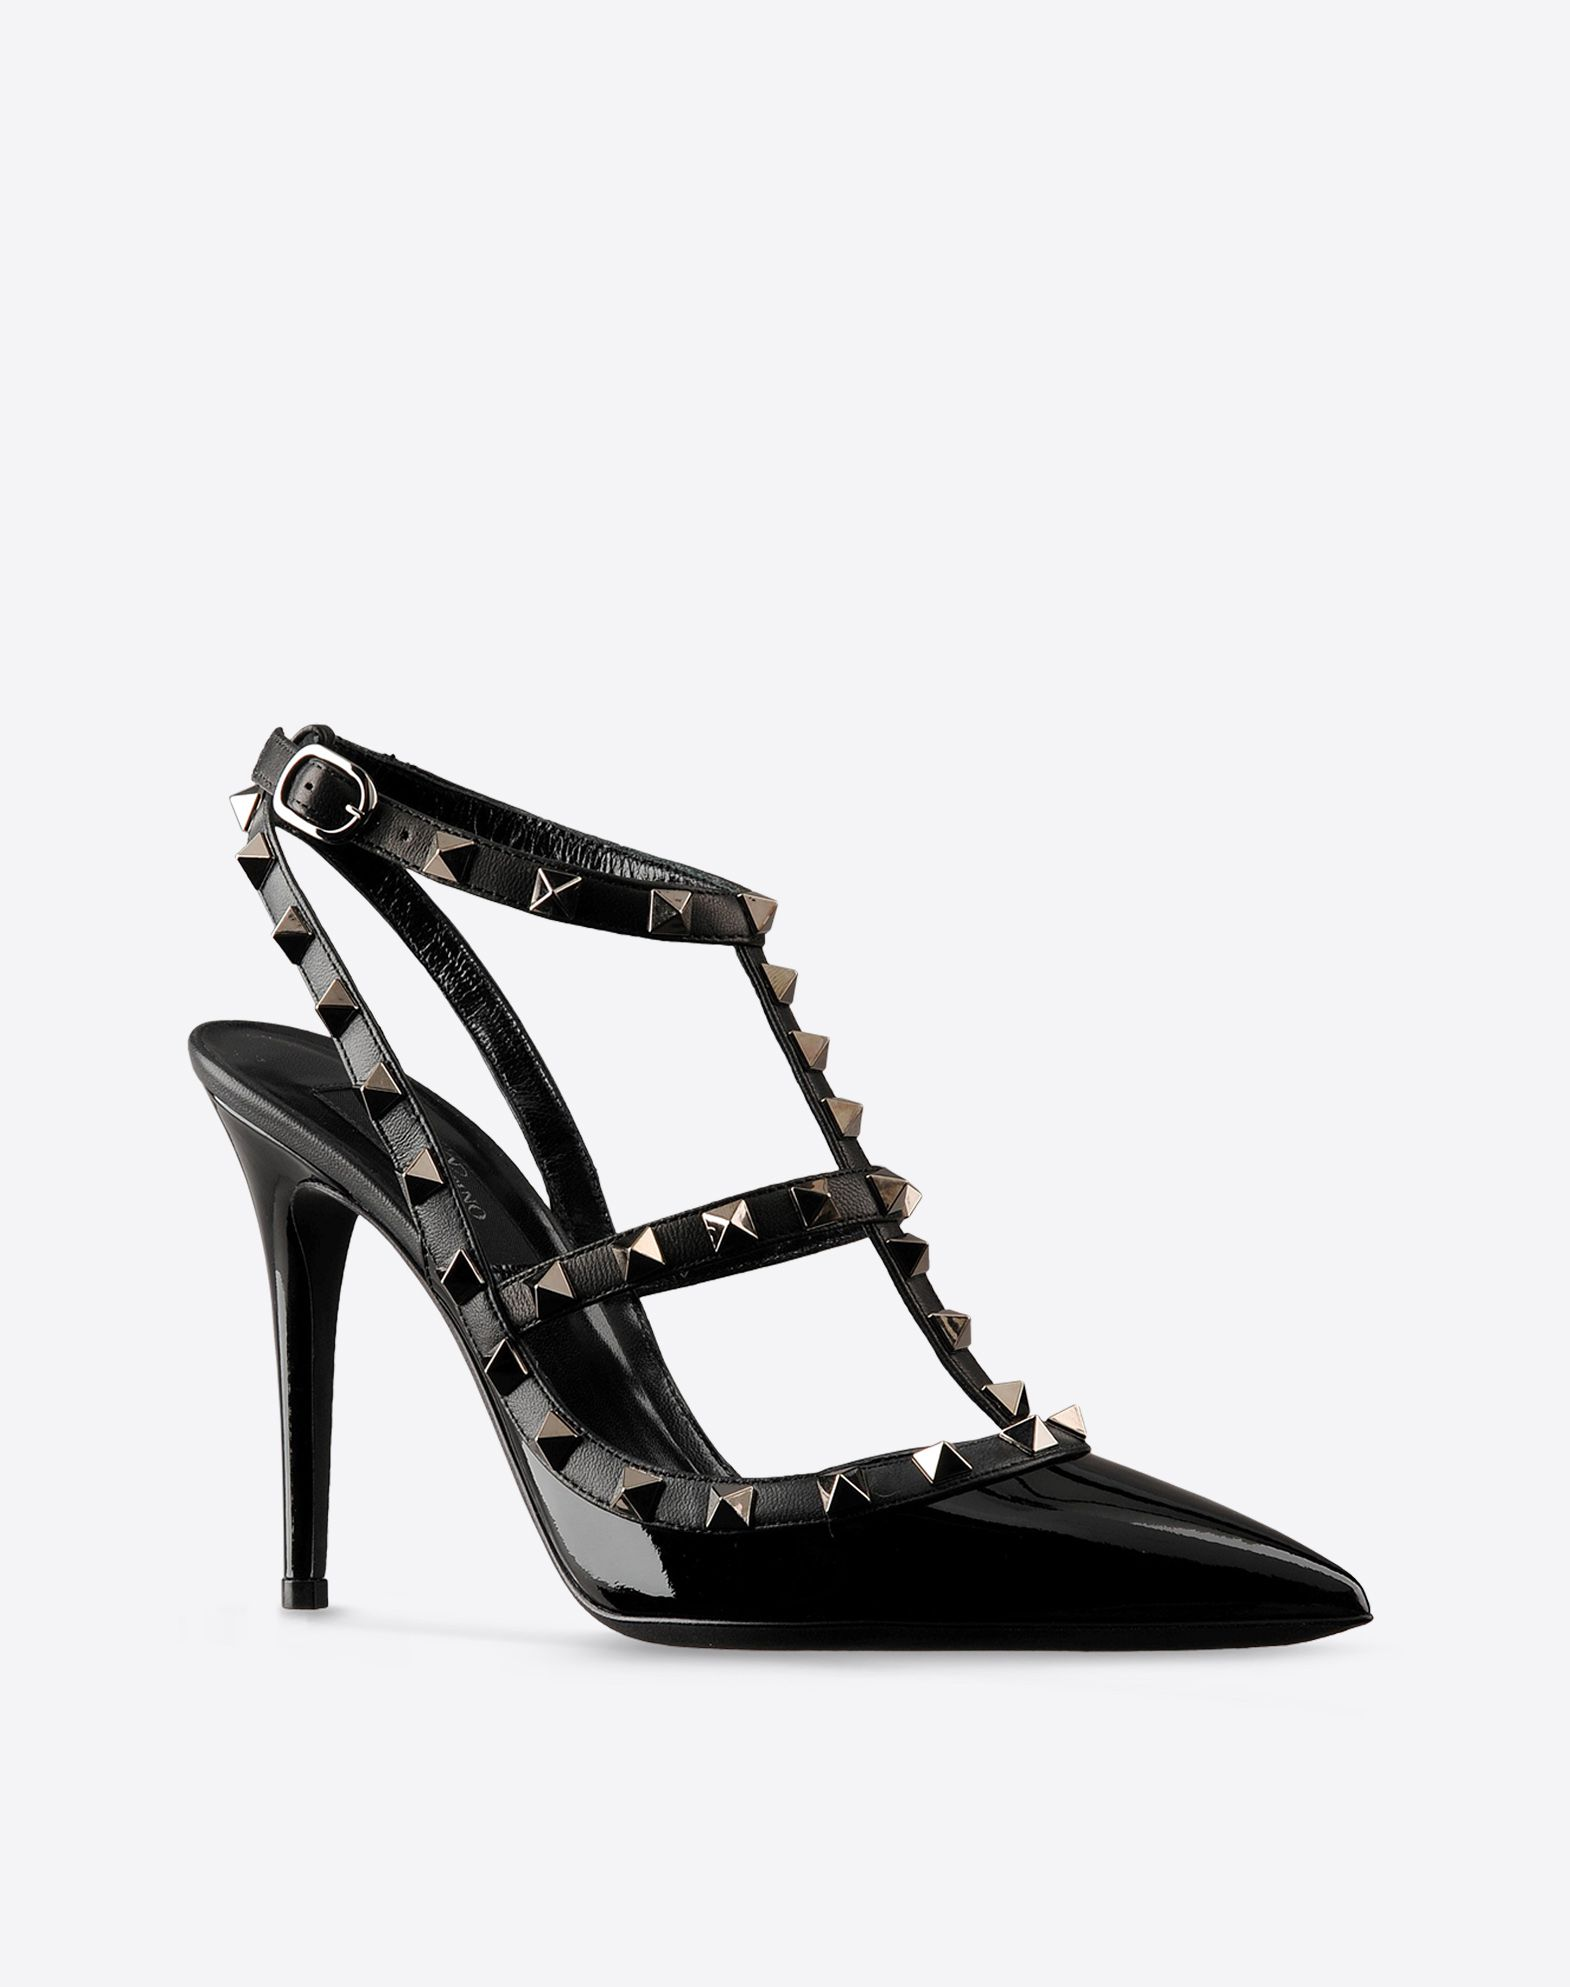 VALENTINO Varnished effect Solid color Side buckle closure Leather sole Metallic inserts Narrow toeline Covered heel  44569227jv